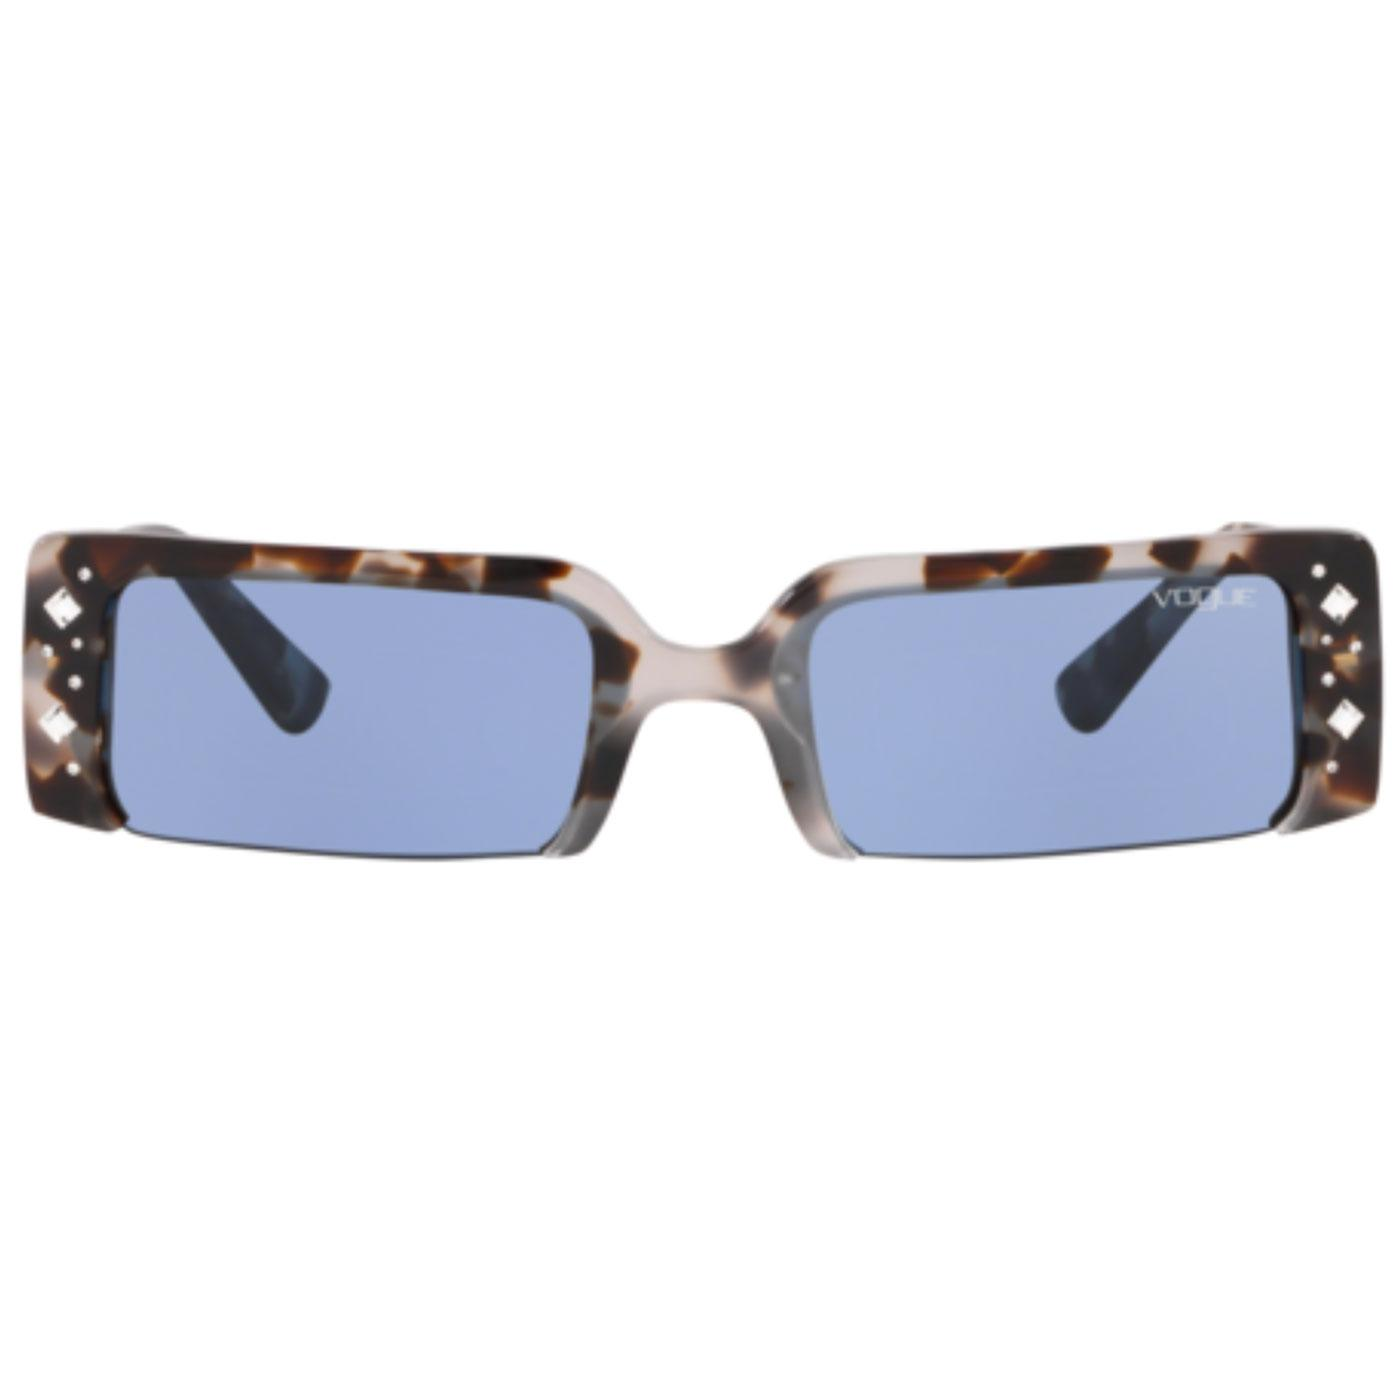 Soho VOGUE x GIGI HADID Retro Square Sunglasses G